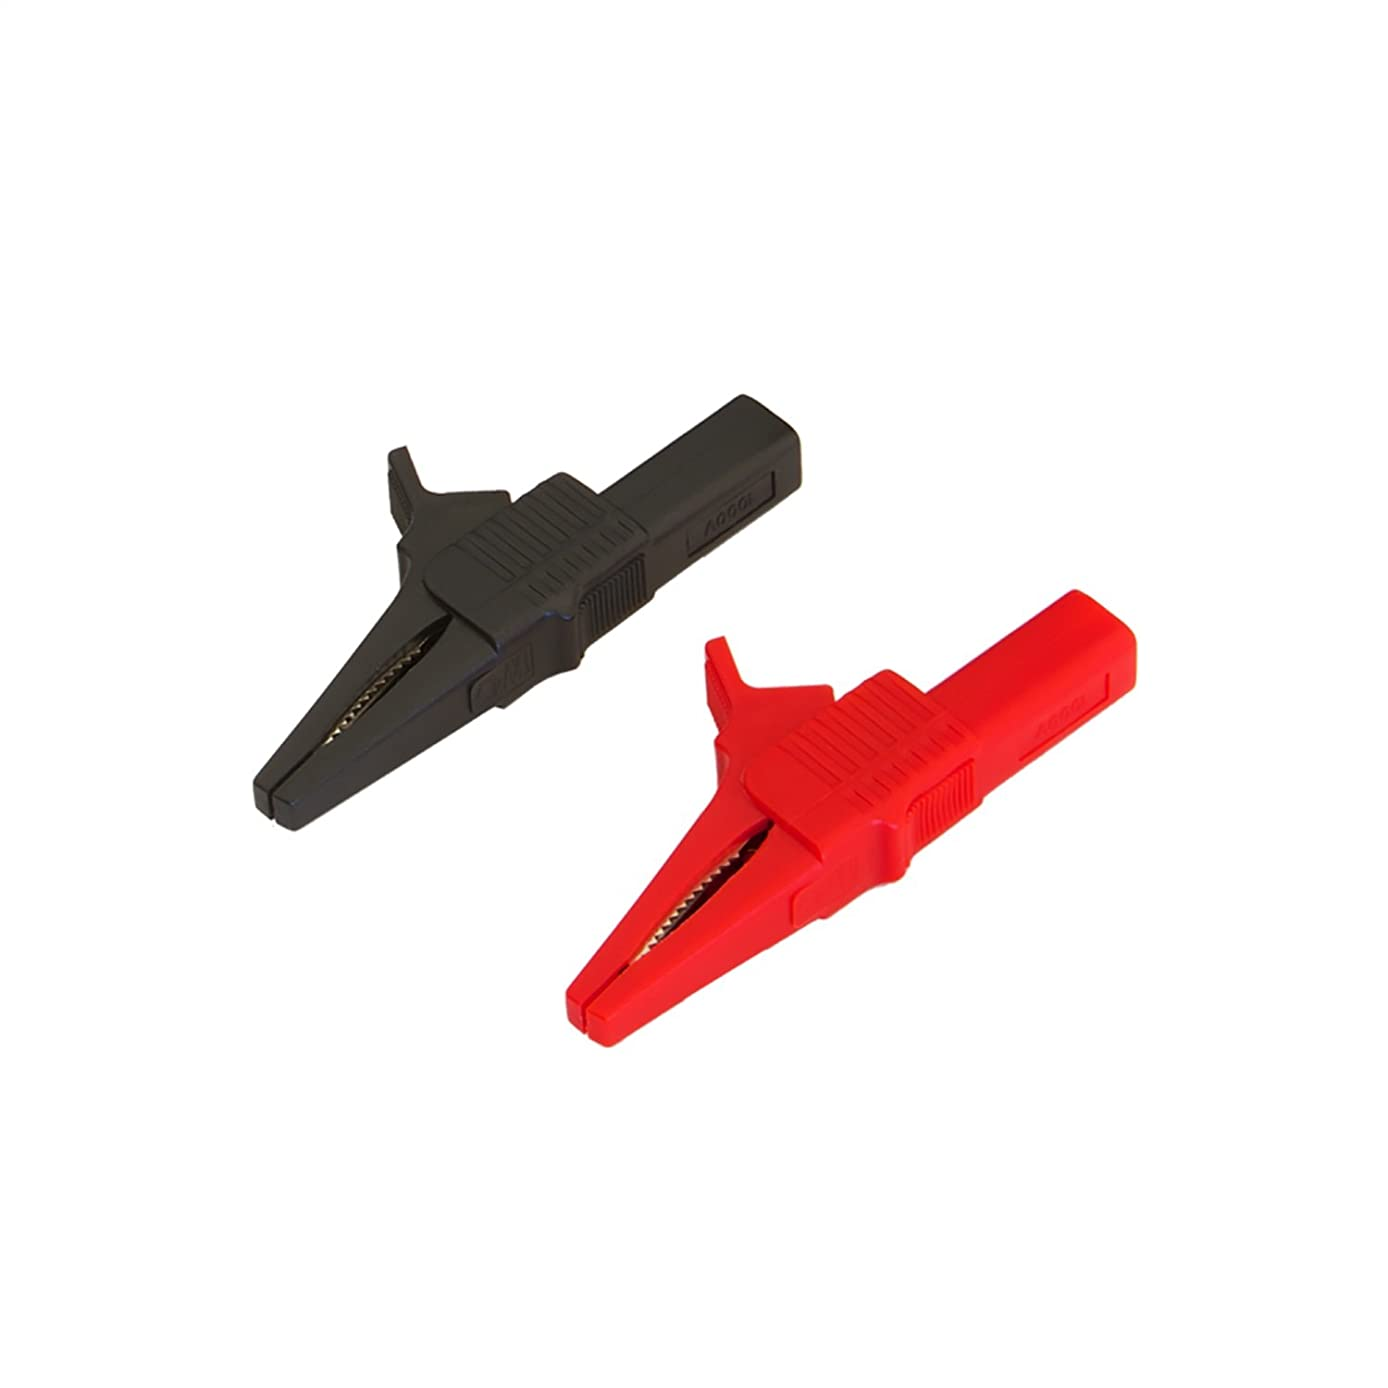 AutoMeter Auto Meter AC-52 Test Equipment Replacement Clamps, Ext. Volt Lead, Insulated